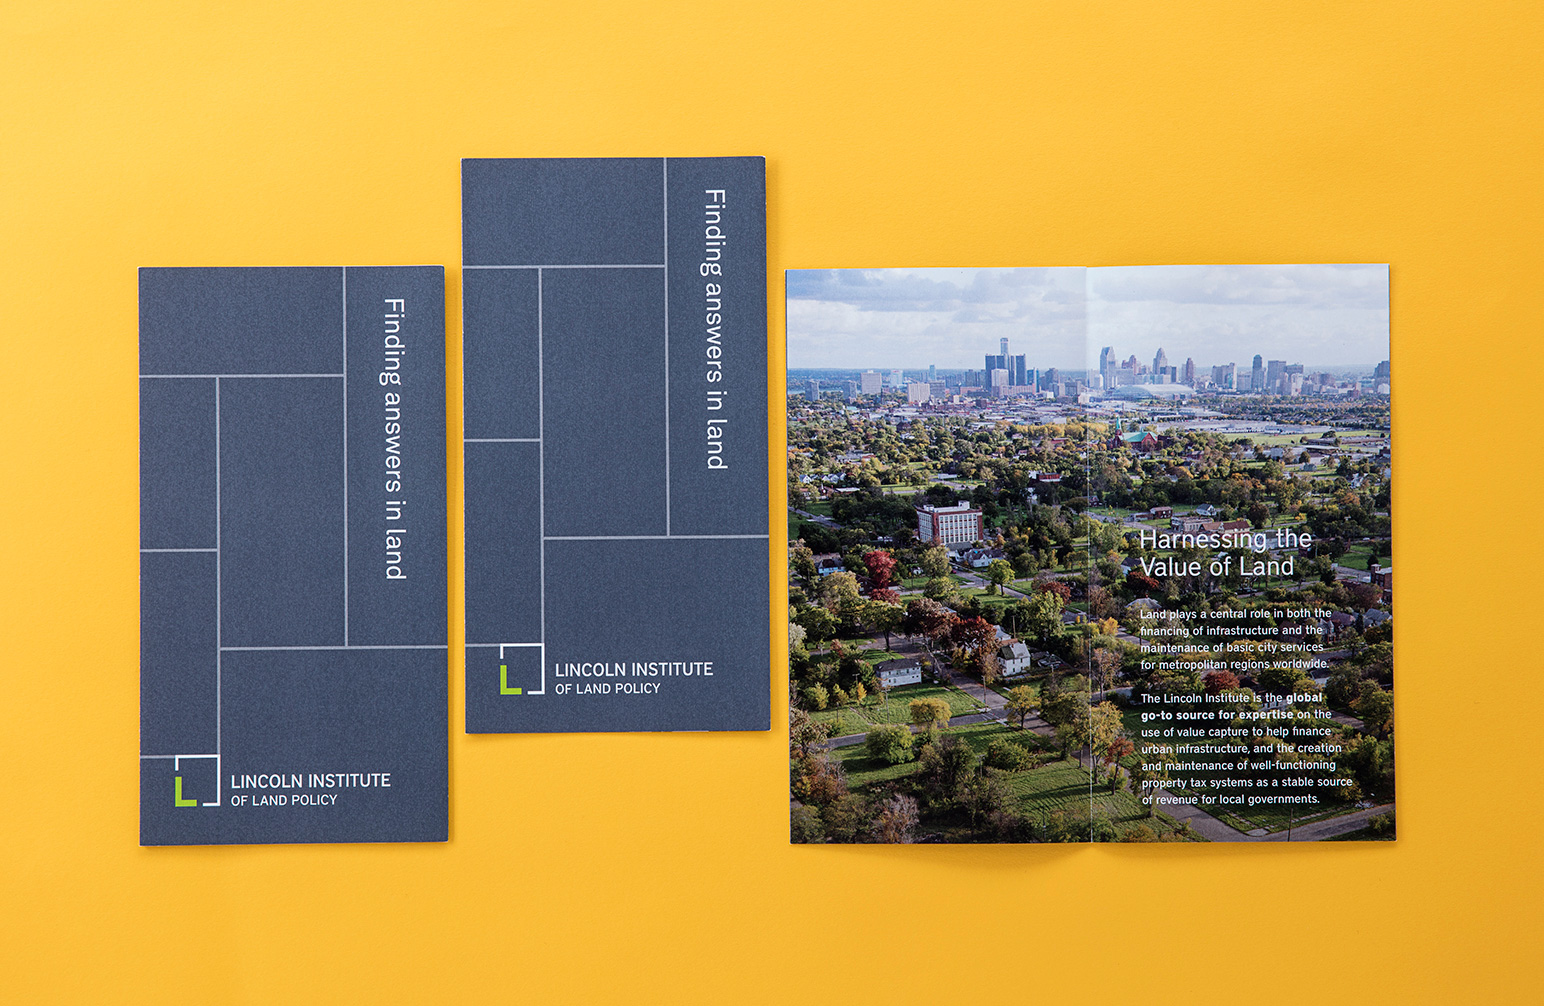 Lincoln Institute of Land Policy Brand and Publication Design